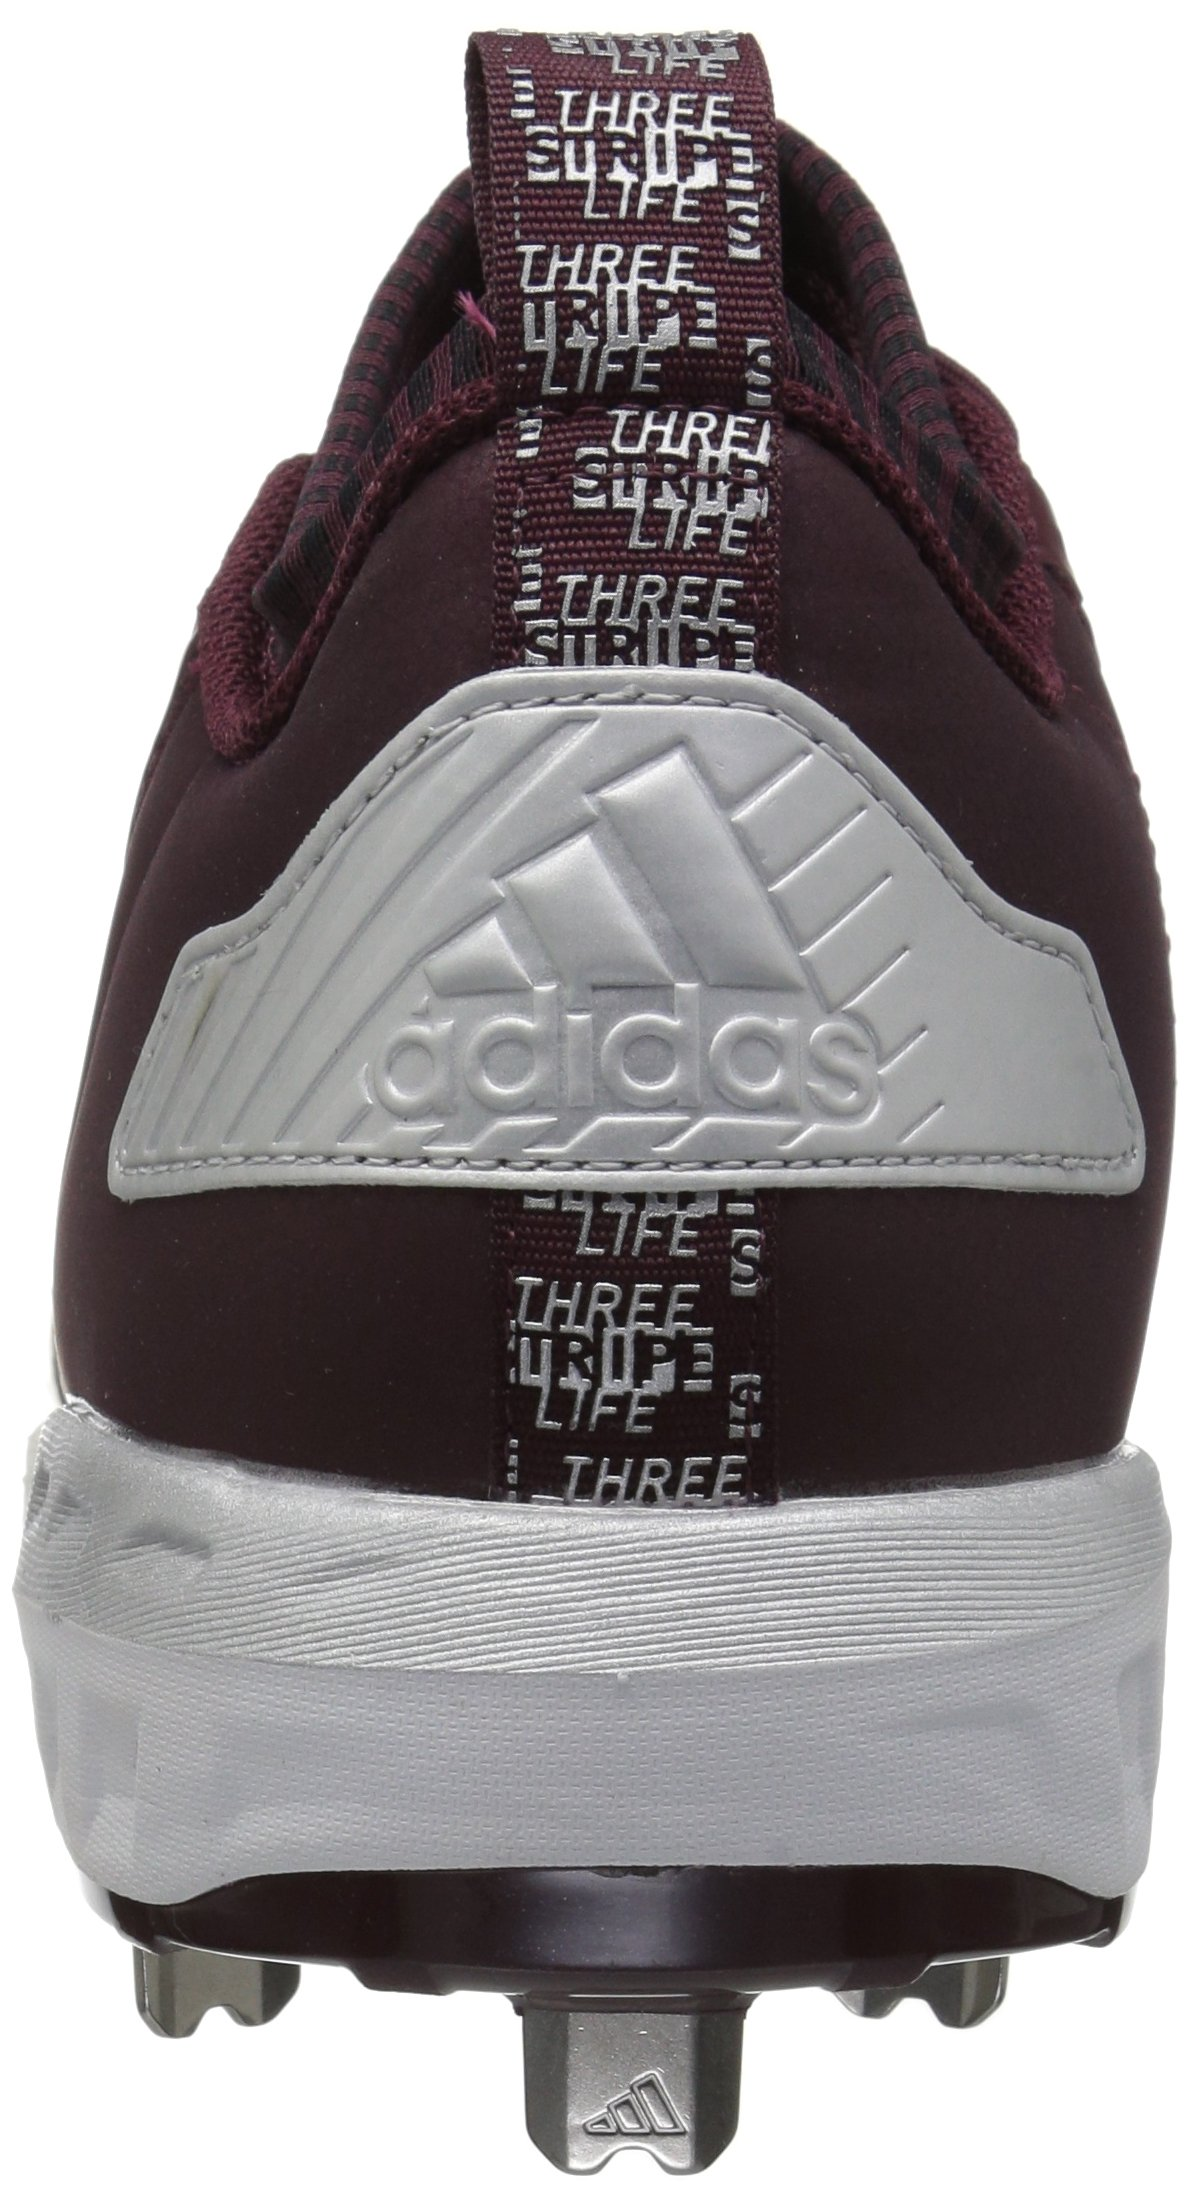 adidas Men's Freak X Carbon Mid Baseball Shoe, Maroon/White/Metallic Silver, 7.5 Medium US by adidas (Image #2)